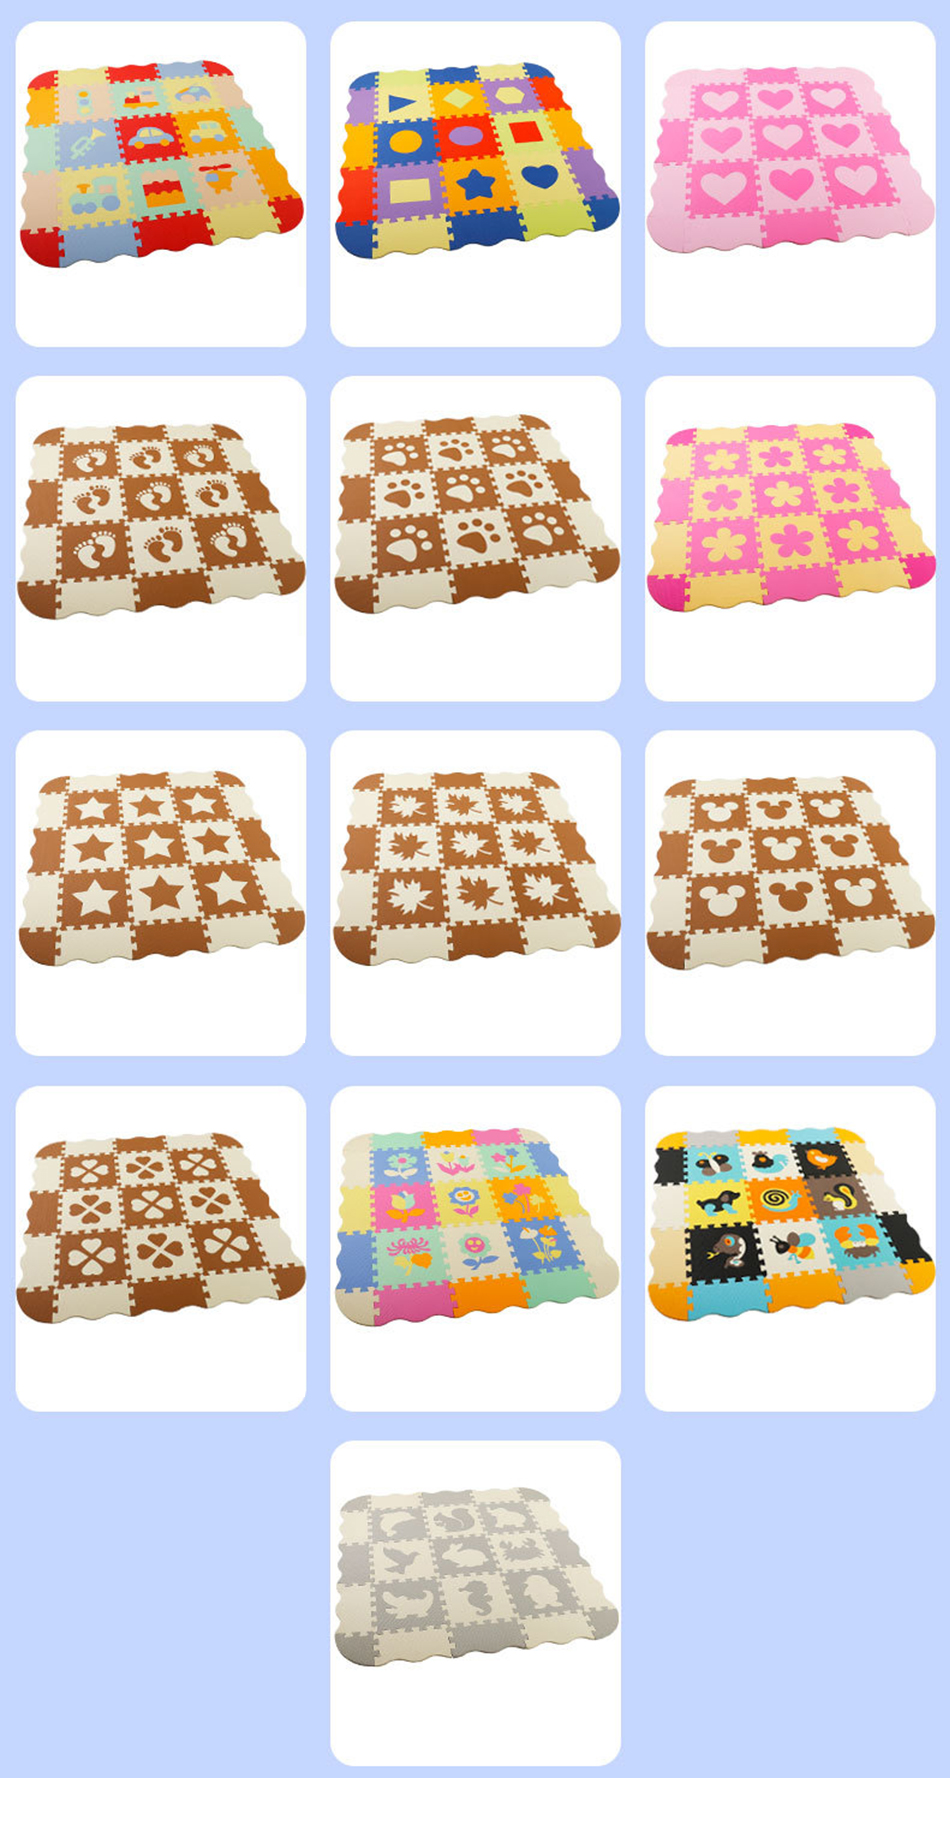 He8a2d55413a6494b80b19b23efebe52e2 25Pcs Kids Toys EVA Children's mat Foam Carpets Soft Floor Mat Puzzle Baby Play Mat Floor Developing Crawling Rugs With Fence